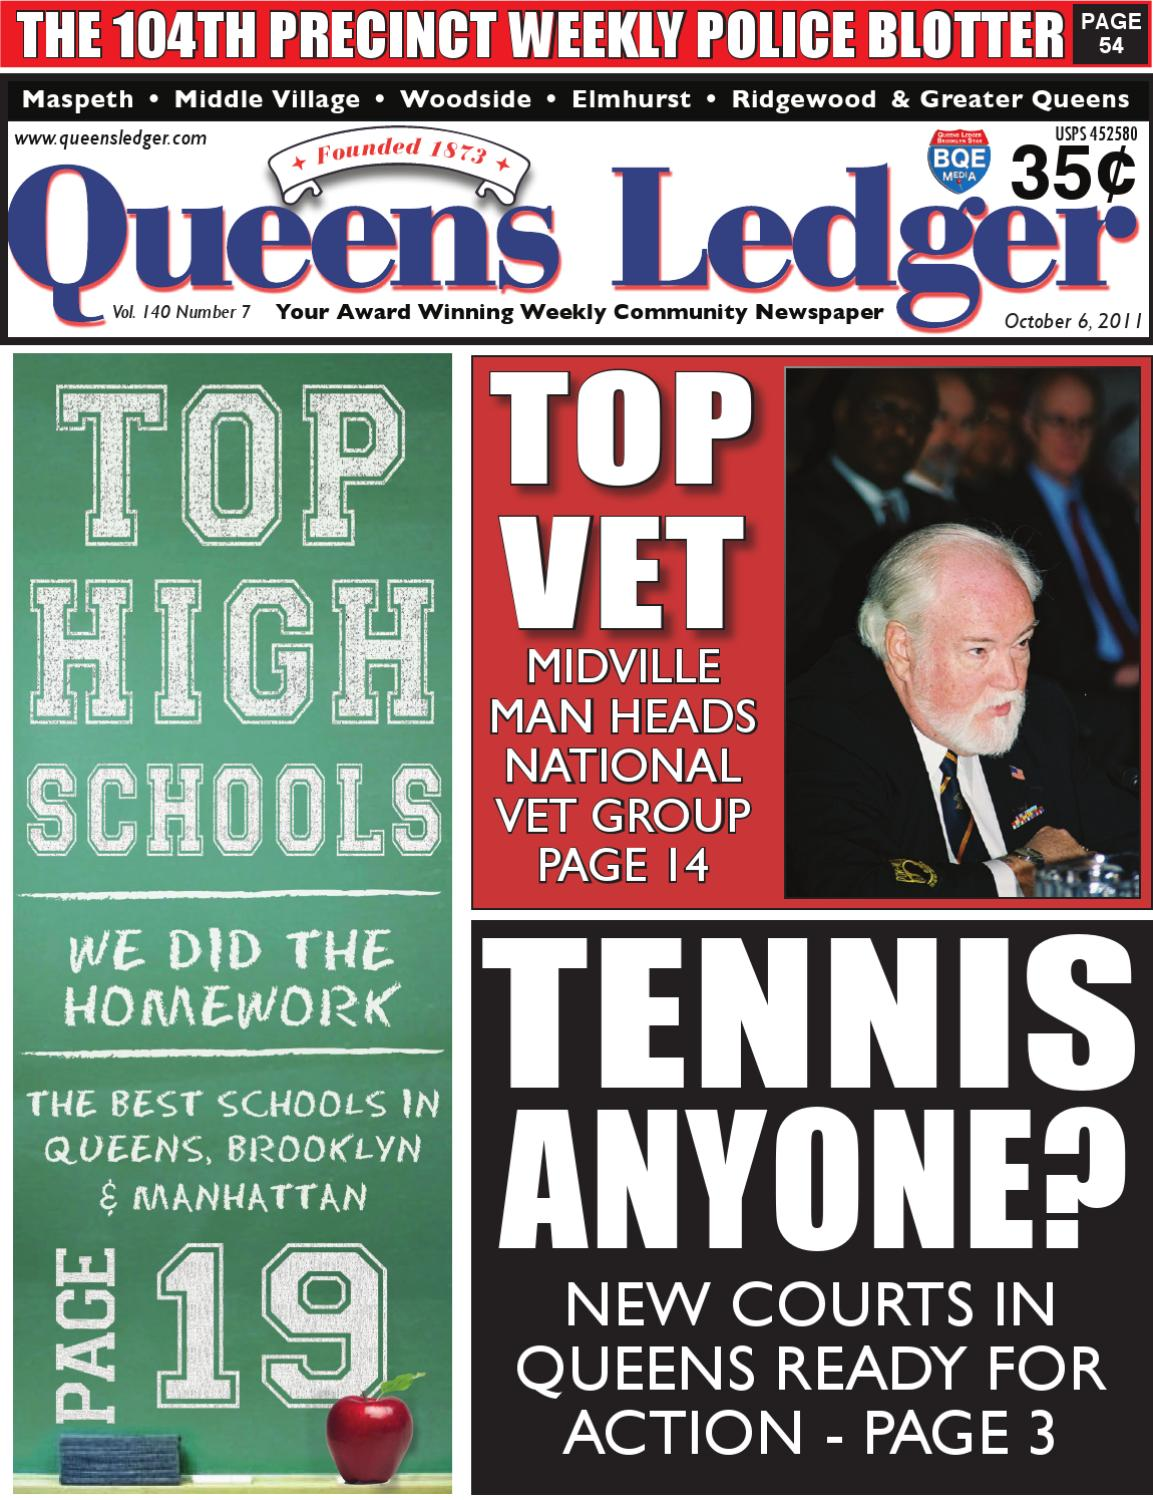 Queens ledger high school issue by bqe media queens ledger queens ledger high school issue by bqe media queens ledger brooklyn star newspaper group issuu aiddatafo Choice Image